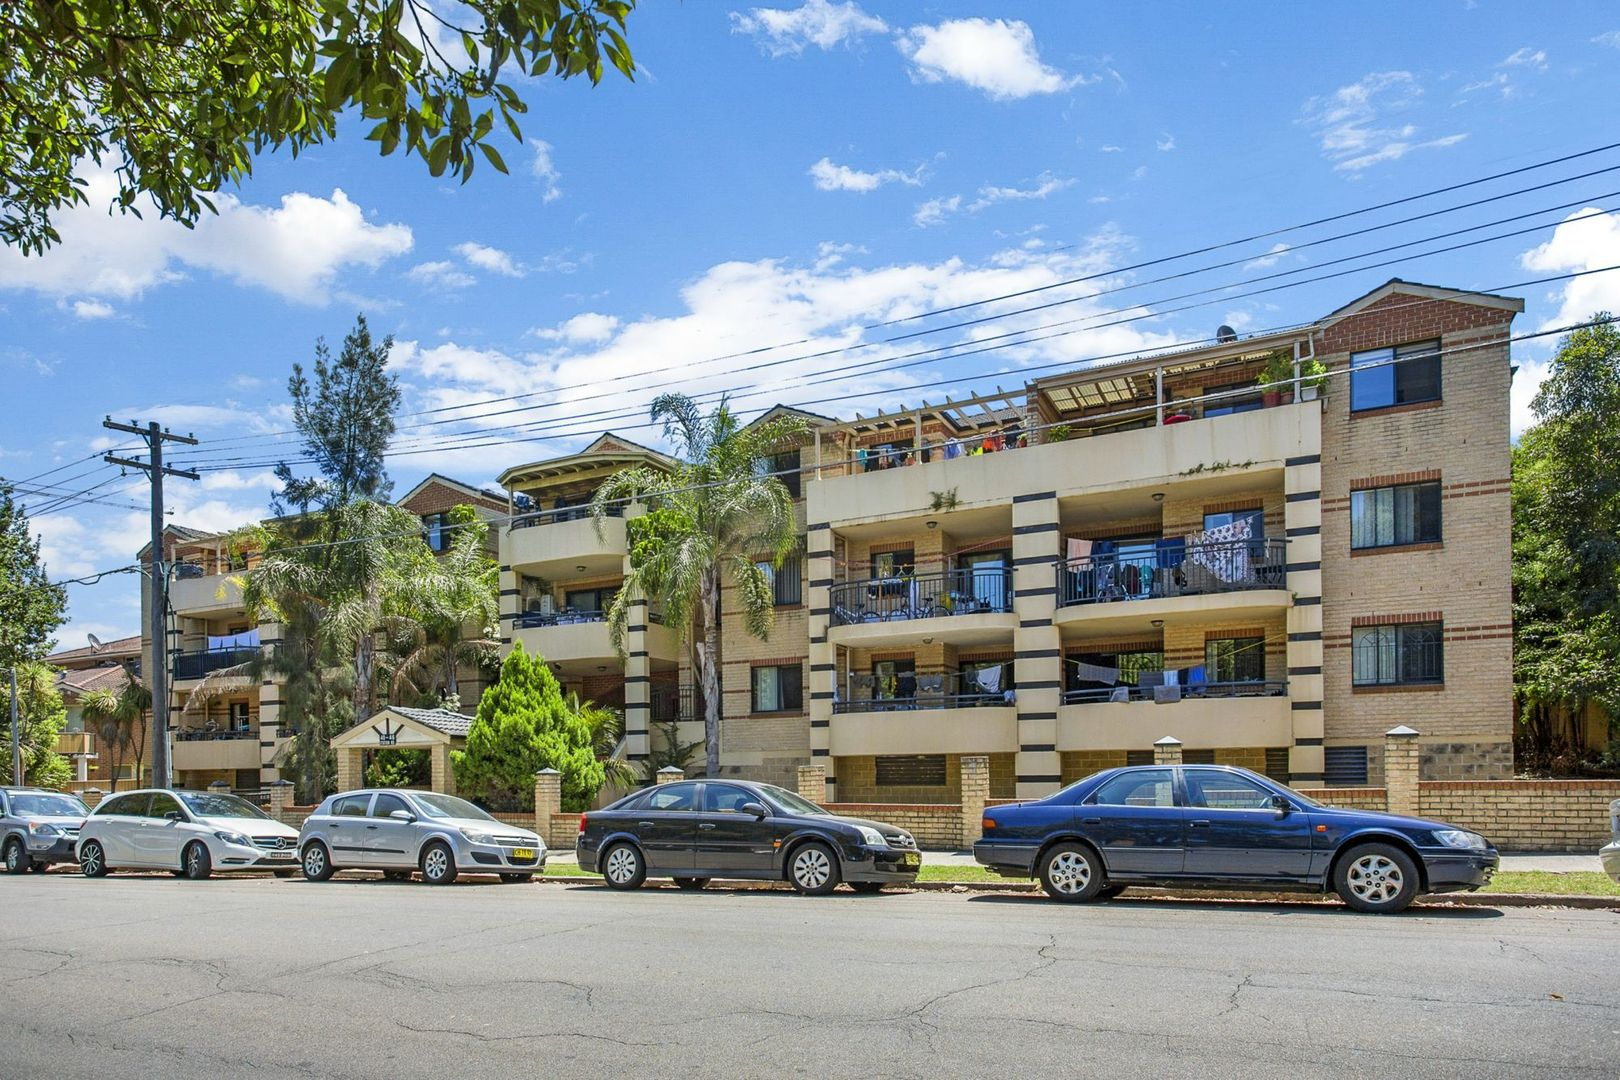 7/40-46 Station Road, Auburn NSW 2144, Image 0